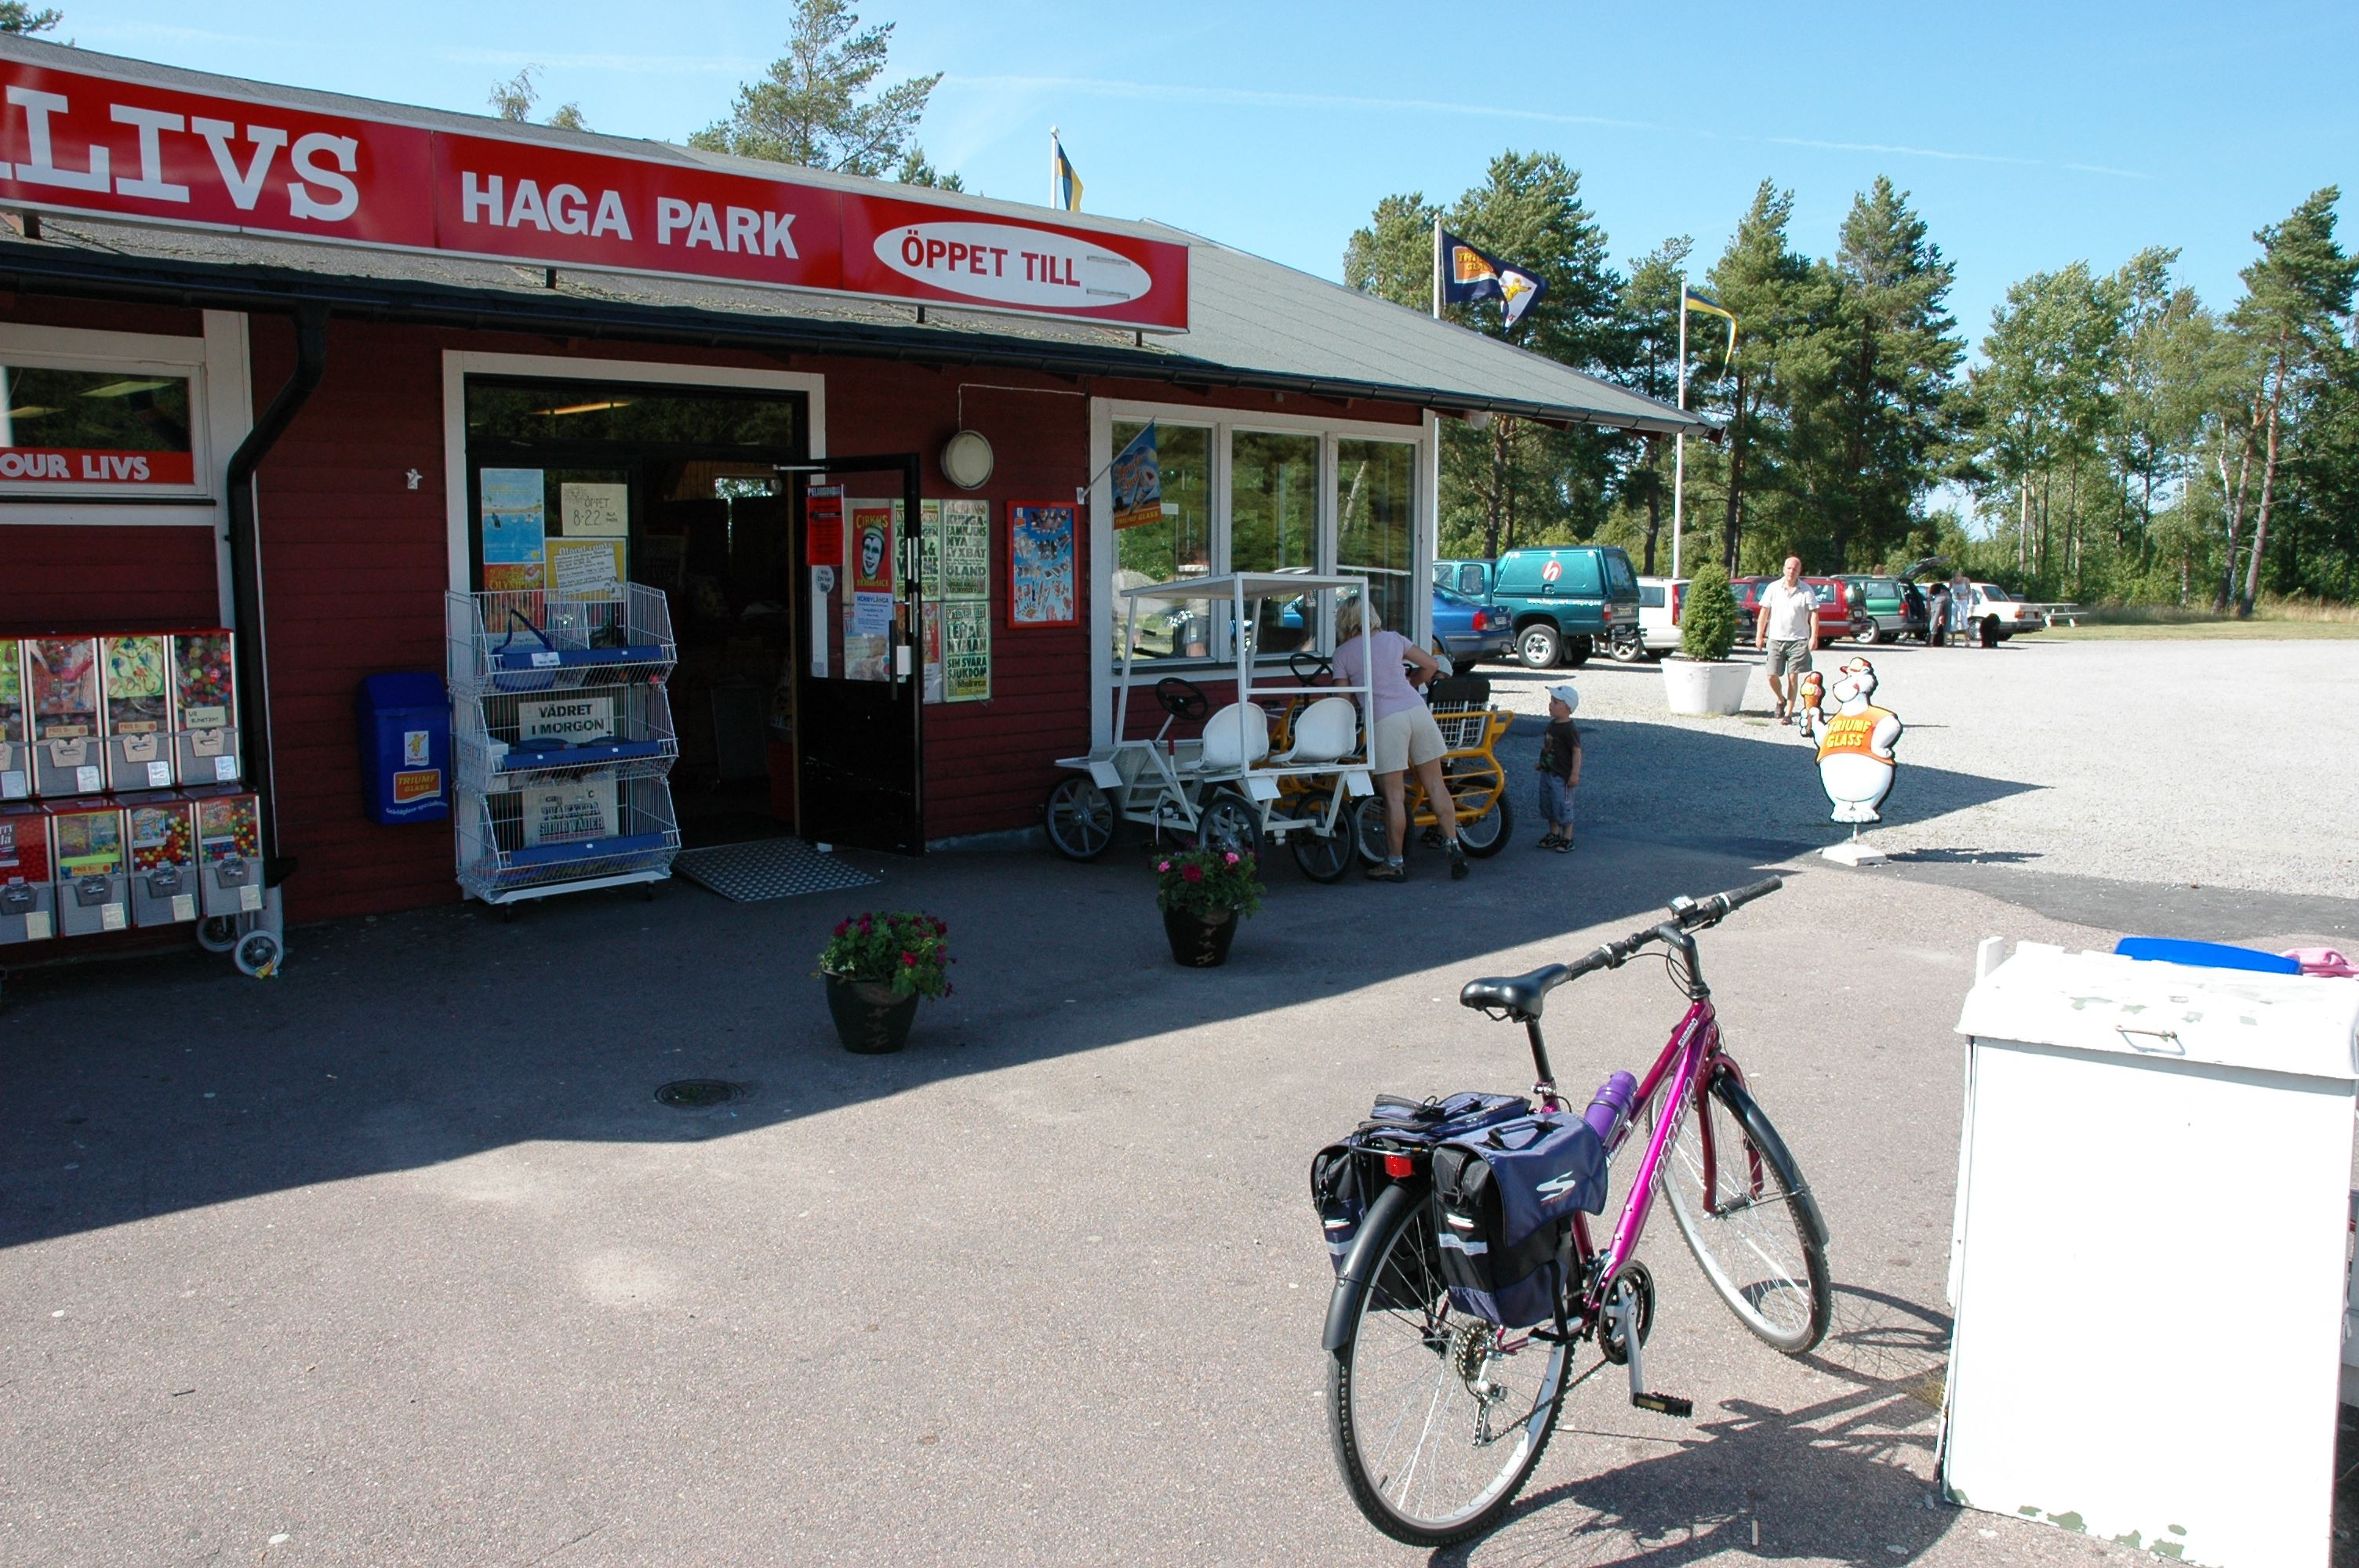 Haga Park Camping & Stugor/Cottages